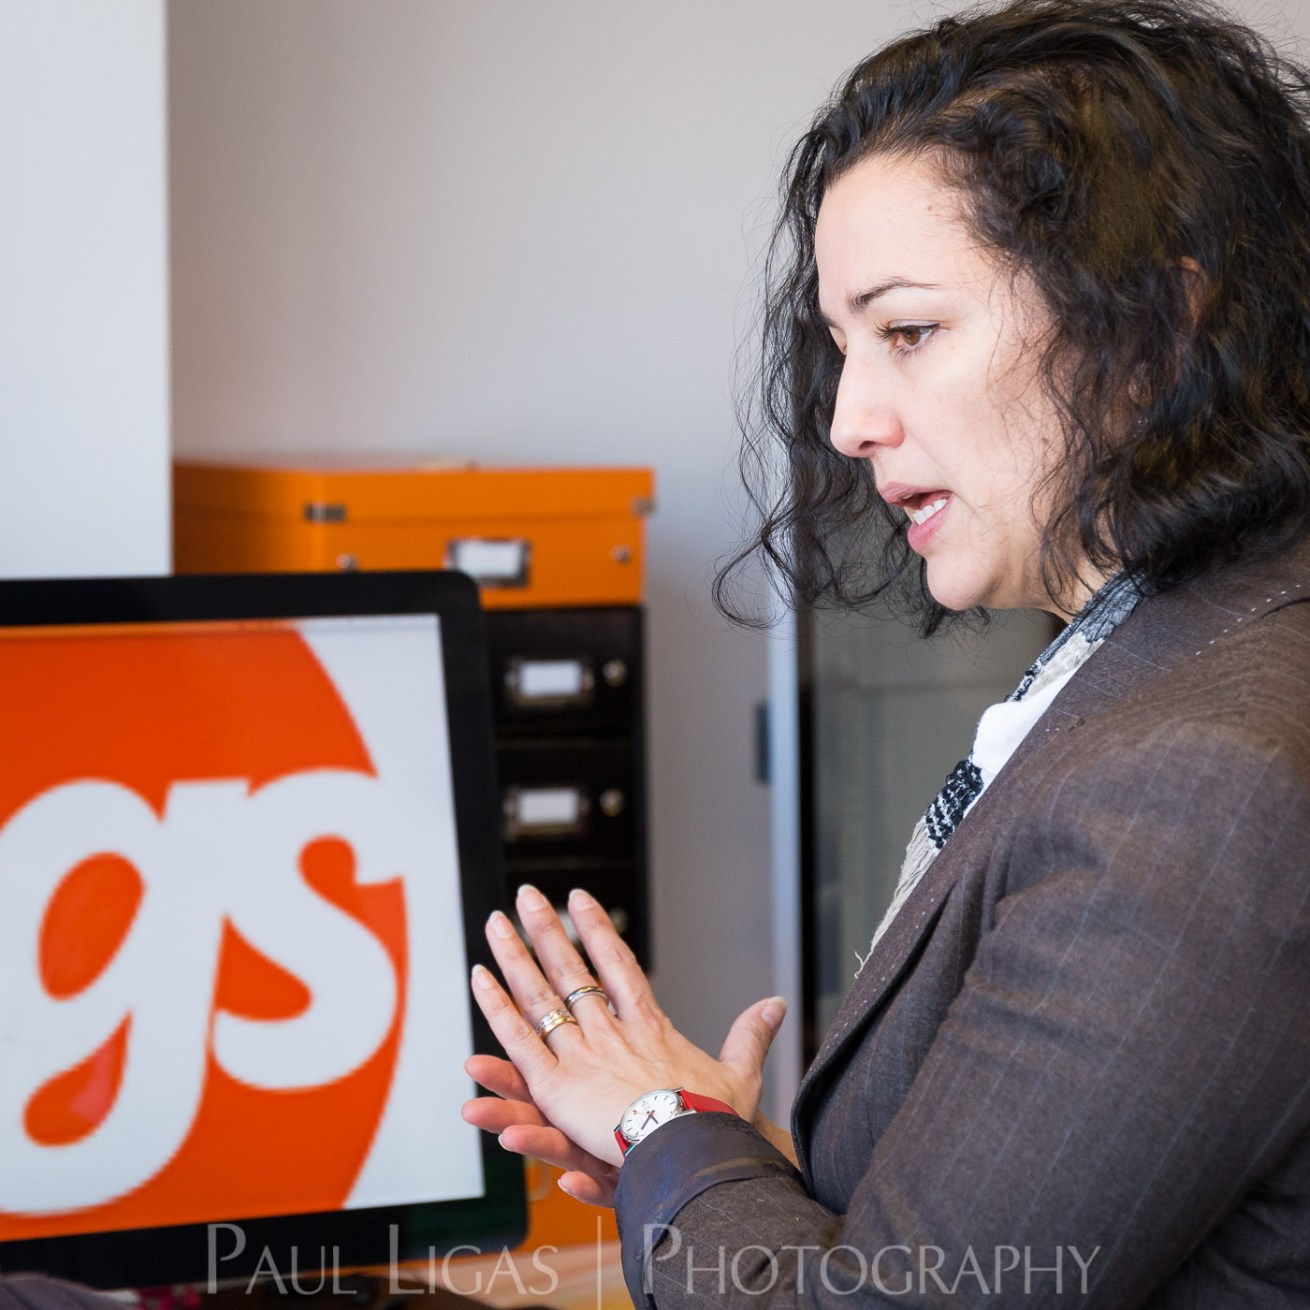 COGS Accountancy Services, Windsor commercial photographer Herefordshire photography people small business 6021